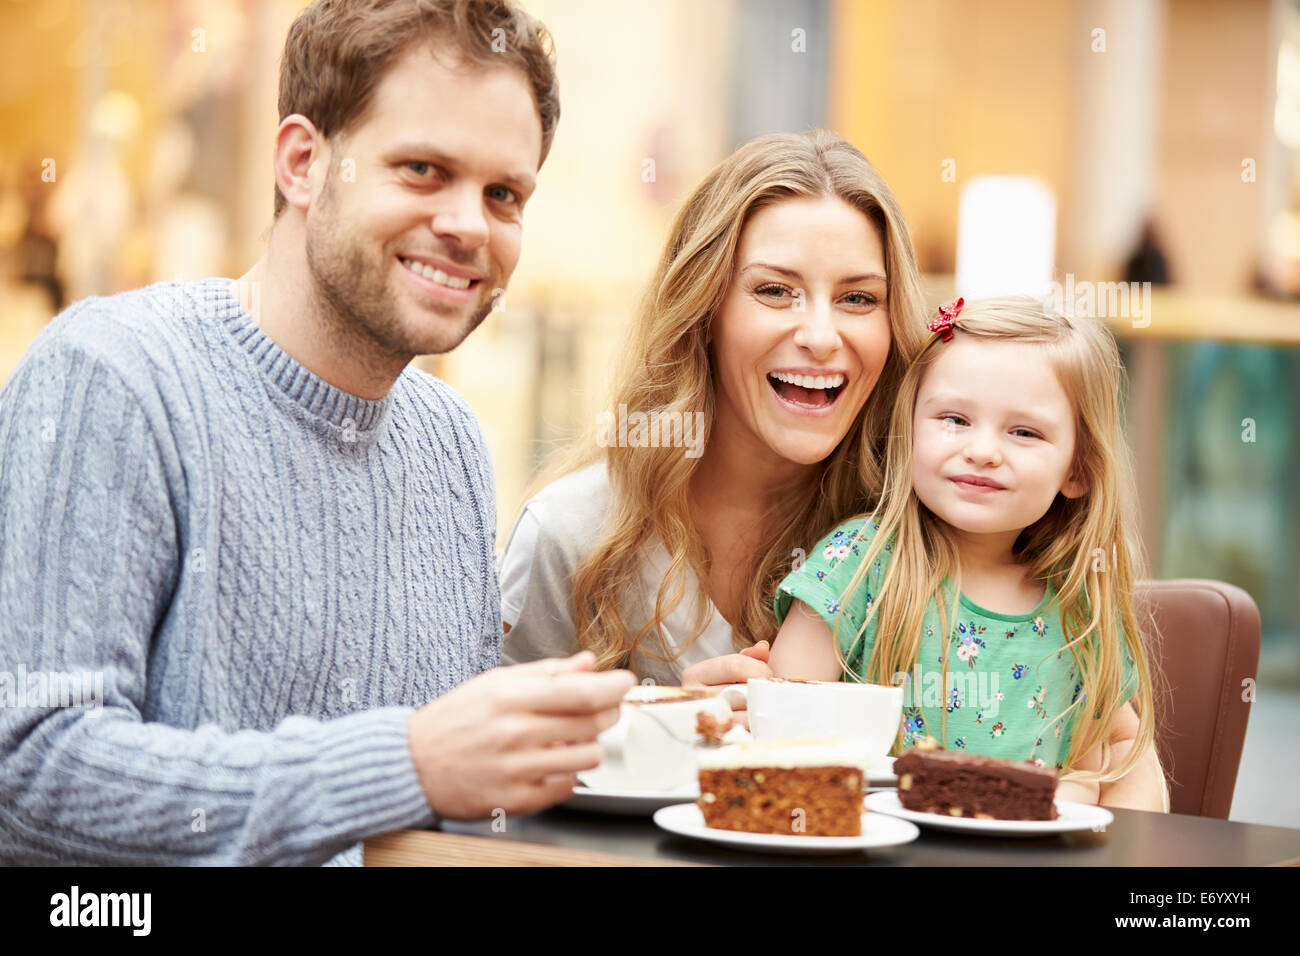 Family Enjoying Snack In Café Together - Stock Image